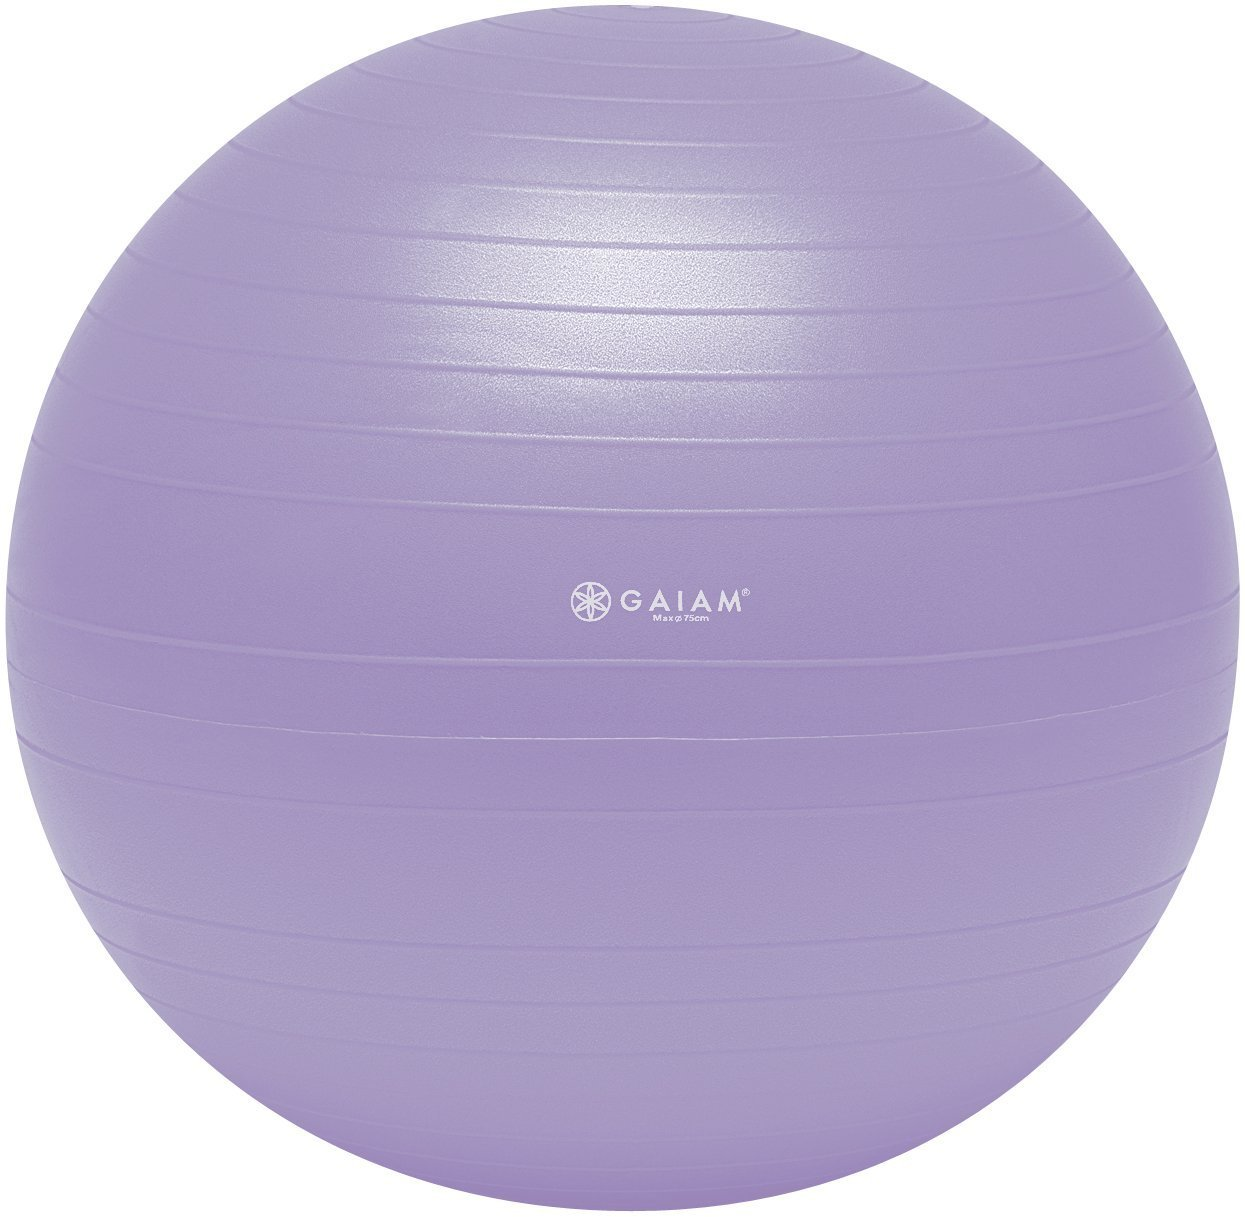 Gaiam Balance Ball Set, 55 Cm -